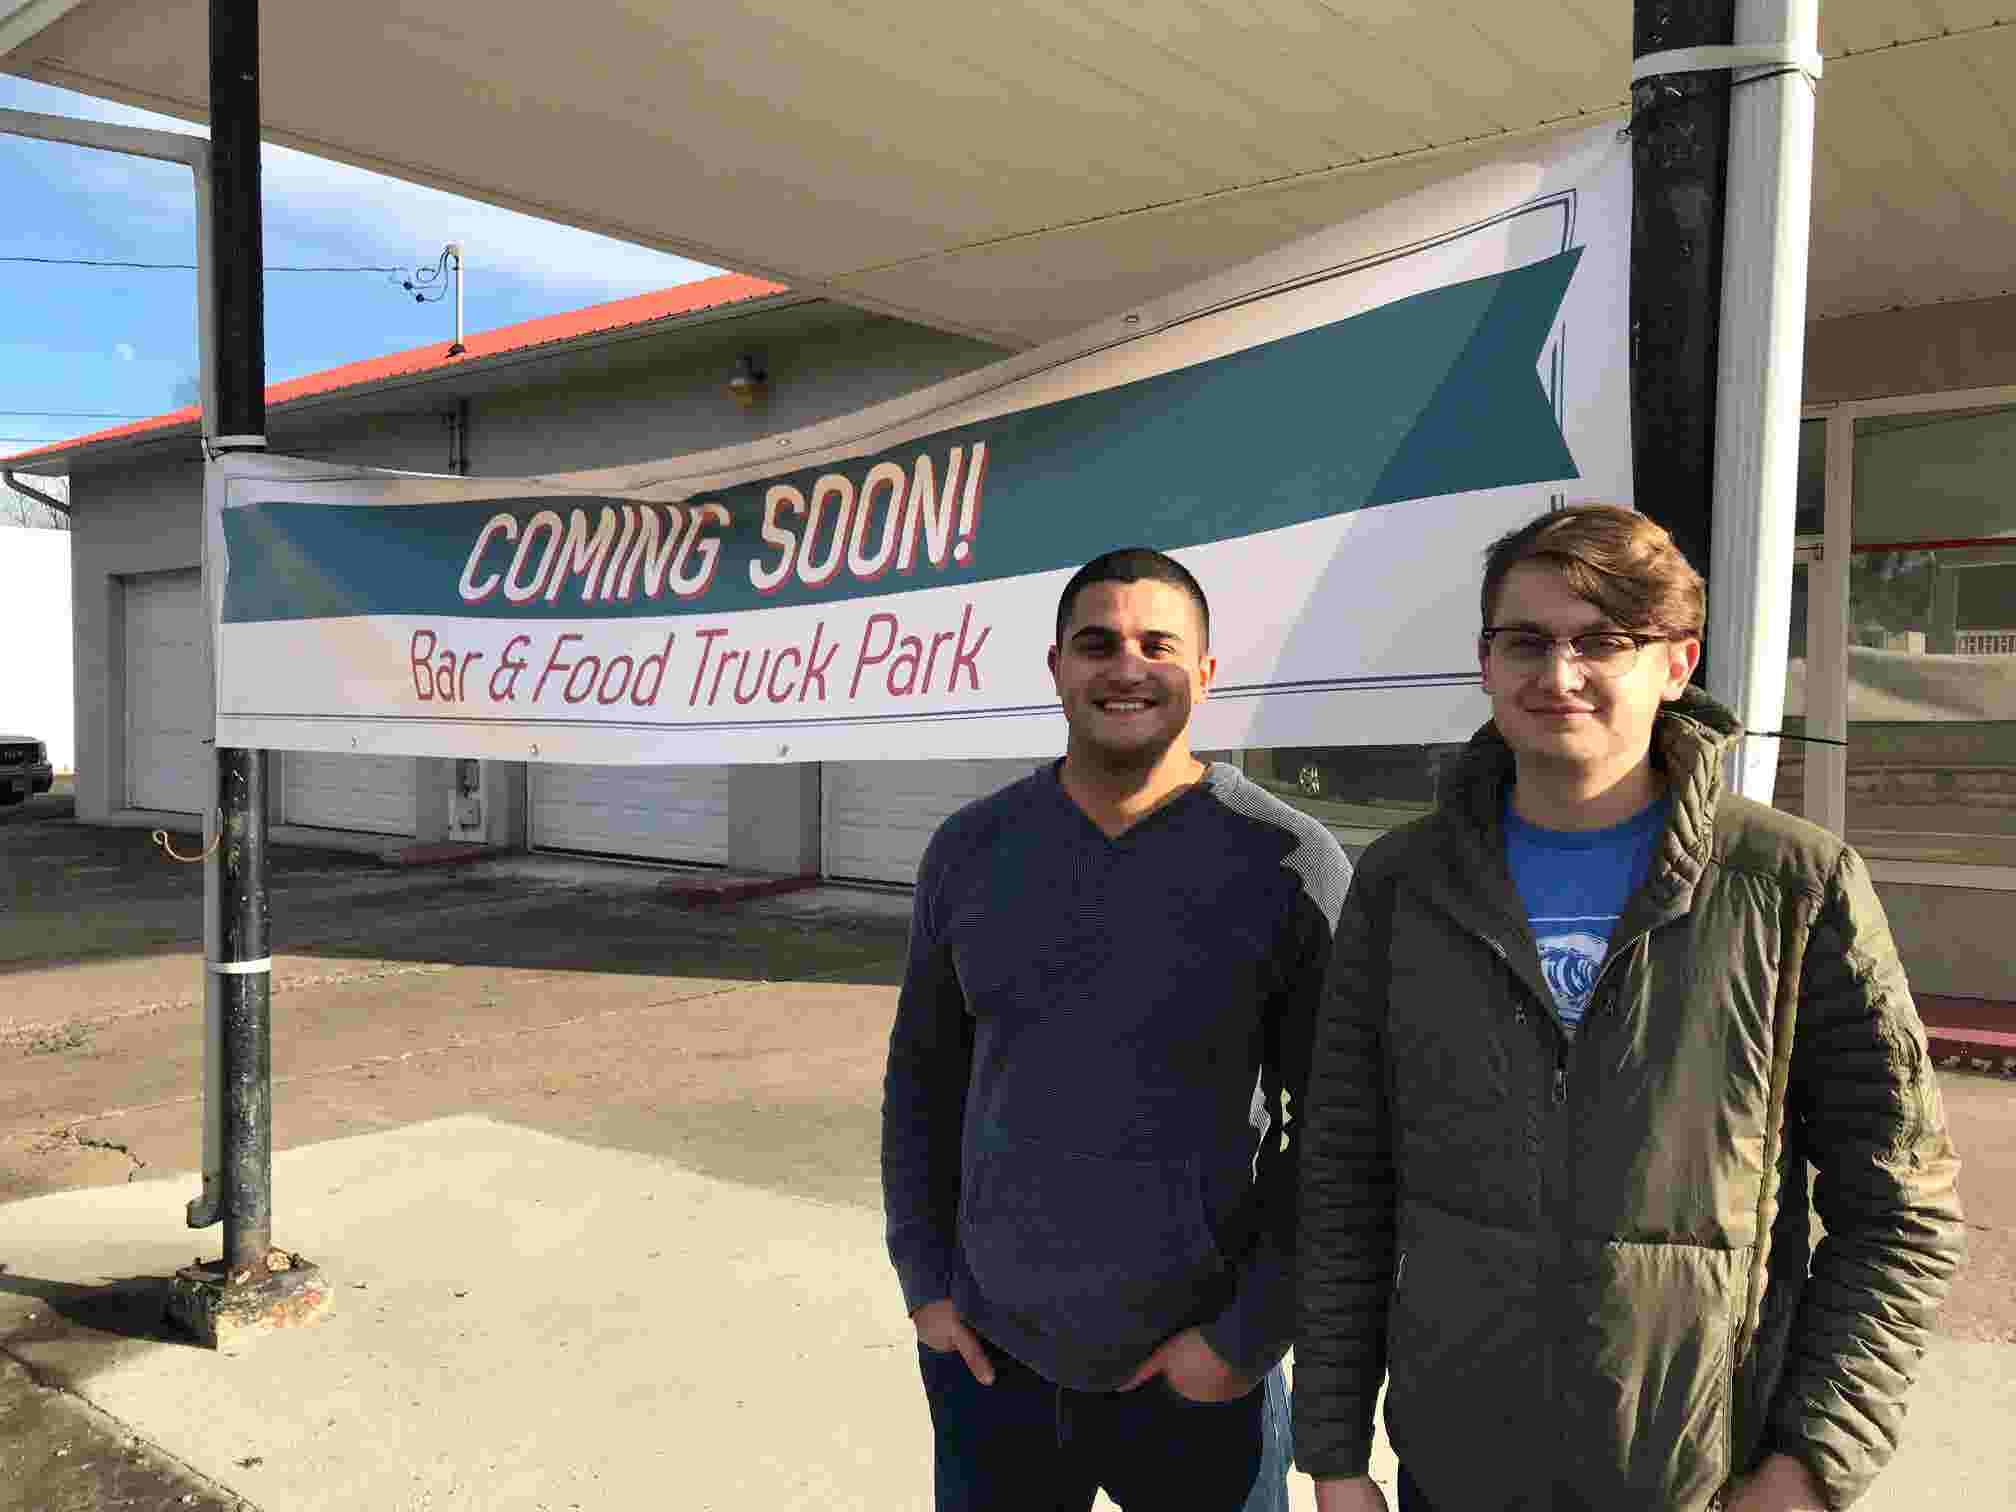 Knoxville food truck park clears hurdles, gets ready for service